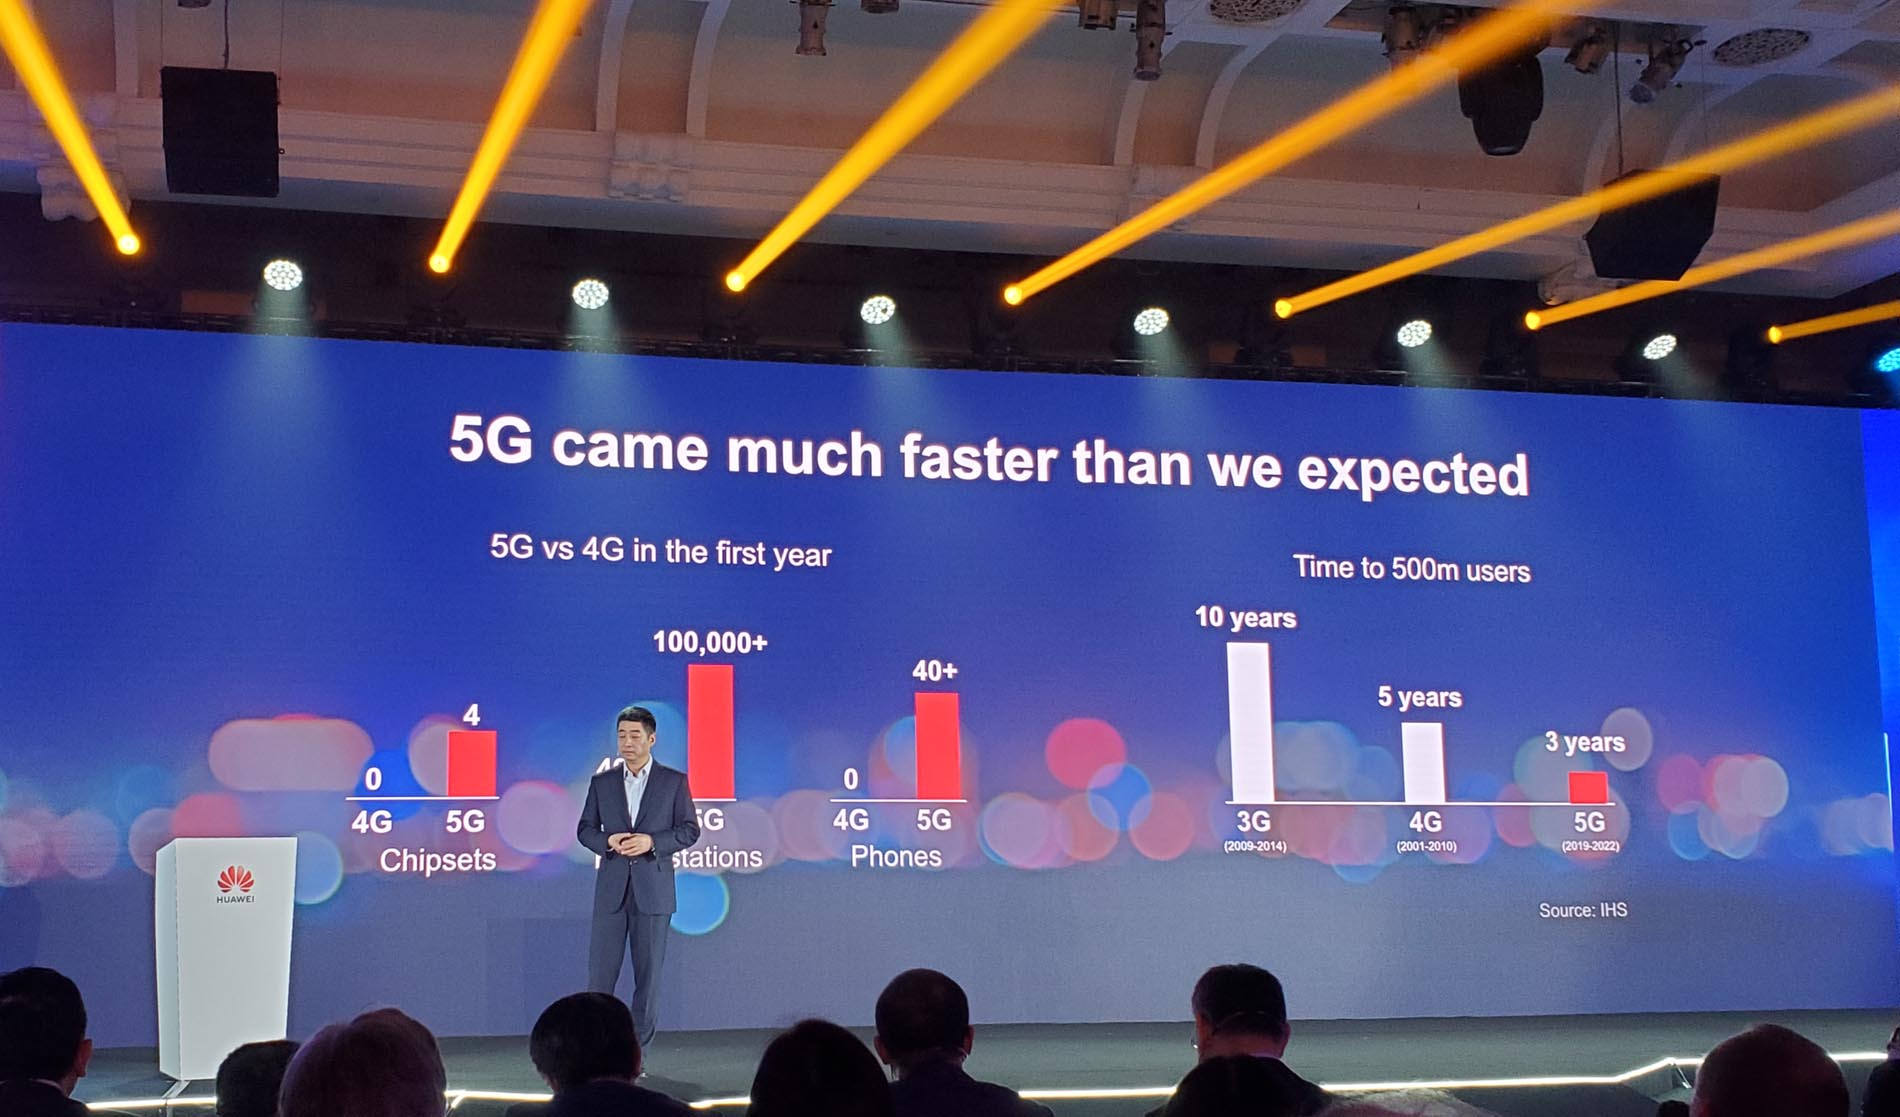 Huawei Deputy Chairman Ken Hu lays out 5G strategy during kick-off keynote at annual Huawei Analyst Summit. (photo: Mike Feibus)